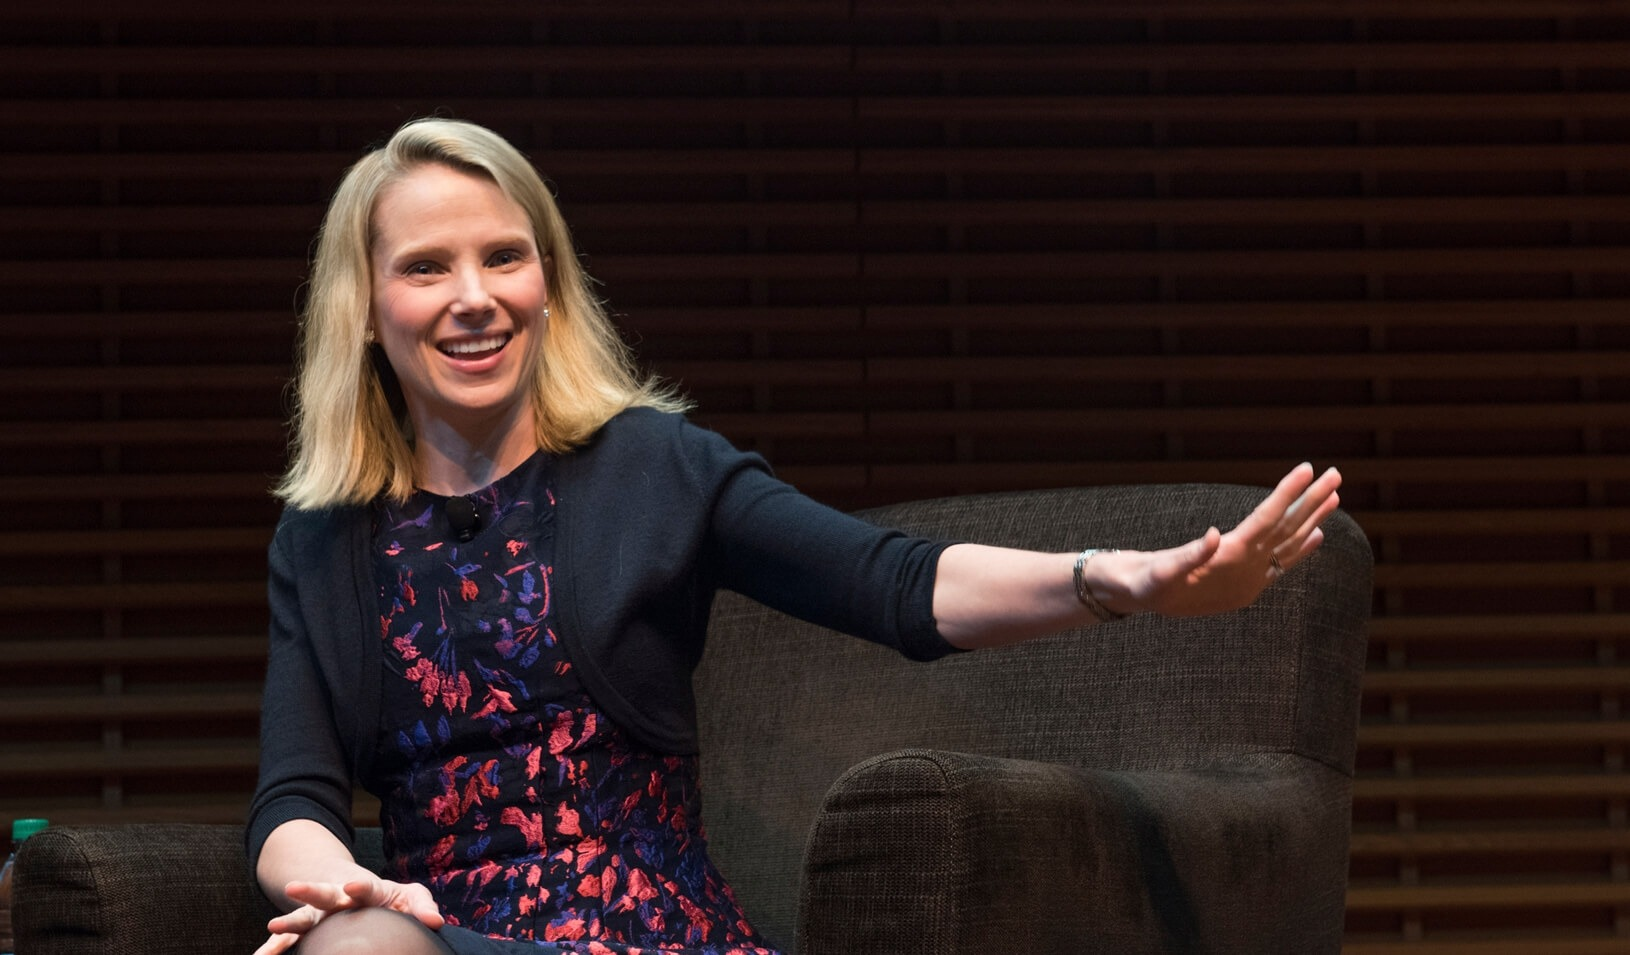 Marissa Mayer famous female engineer